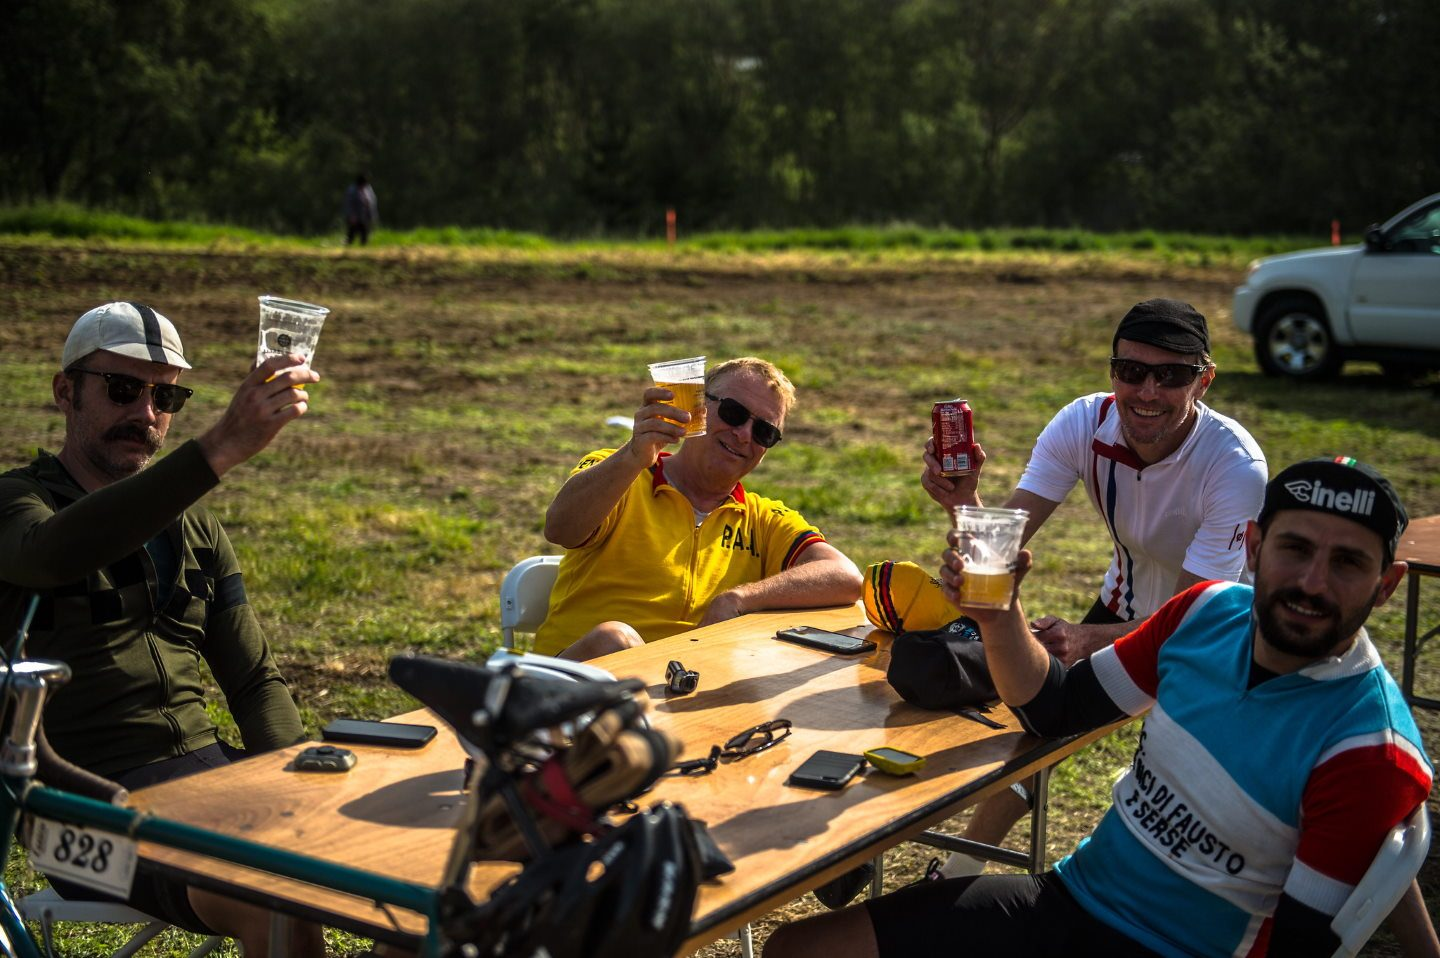 Eroica cyclists drinking beers